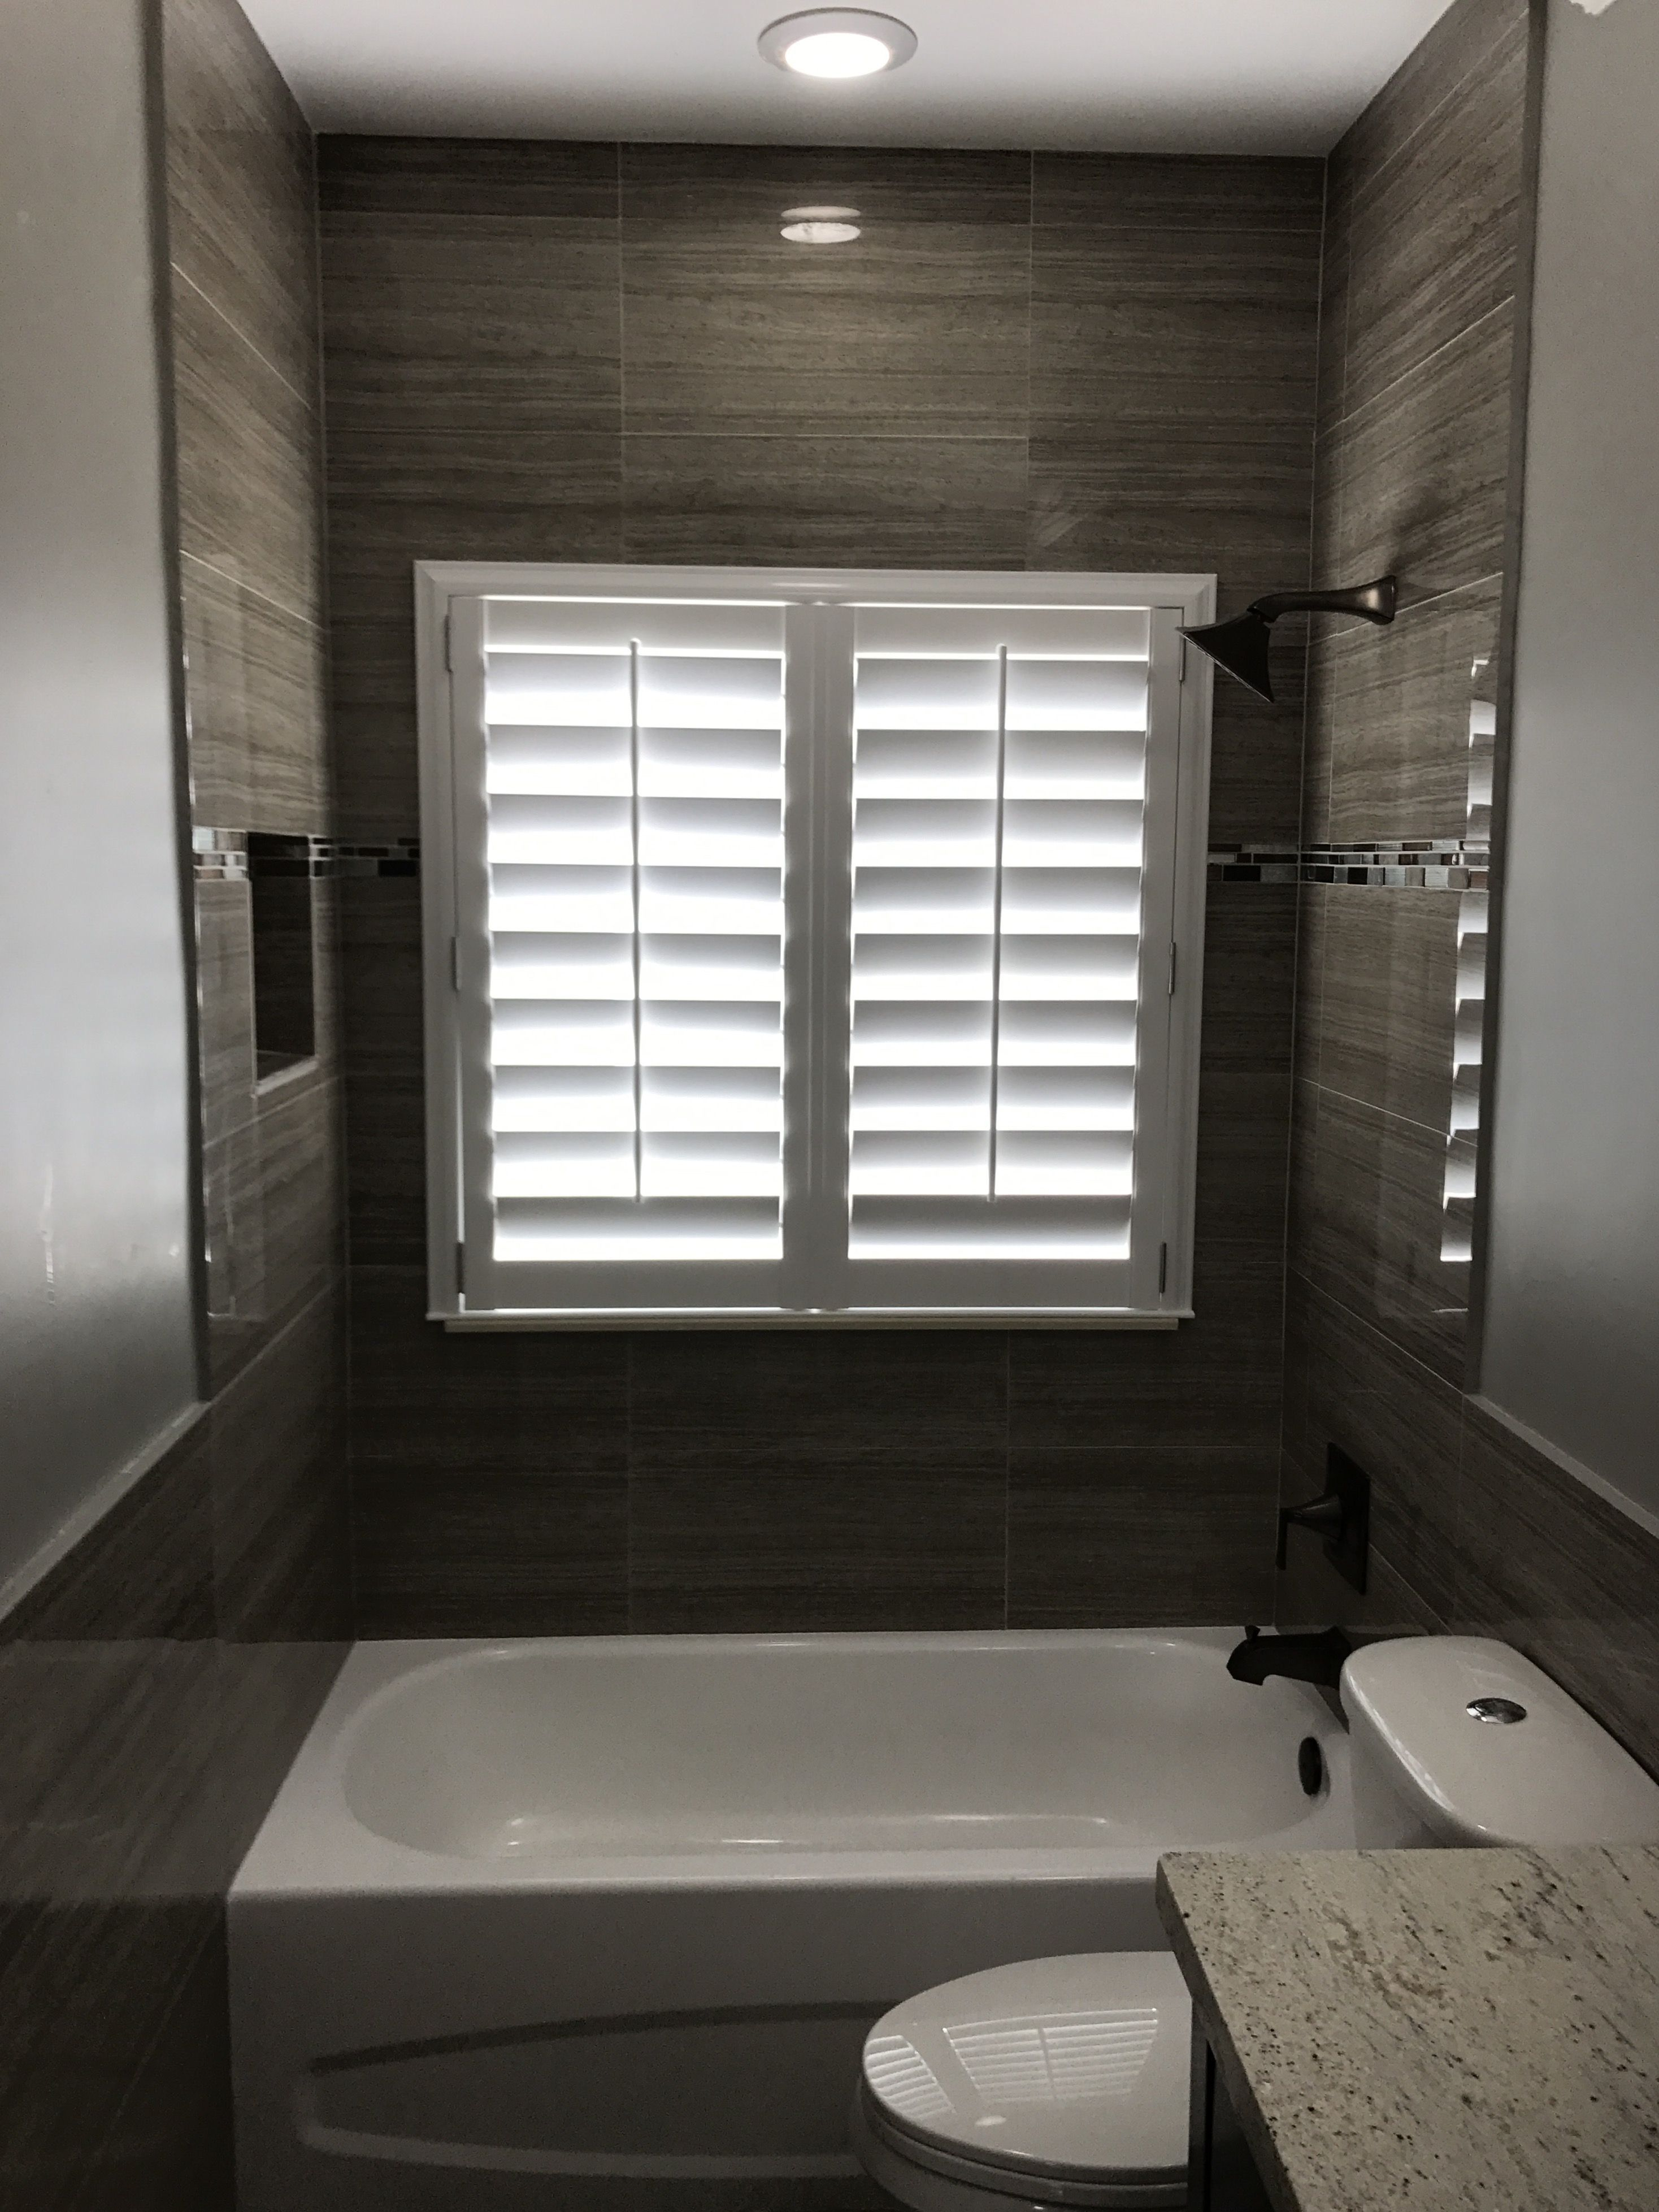 Bathroom Polywood 4 5 Plantation Shutter With Stainless Steel Hardware Blindsandcurtainsfarmhouse